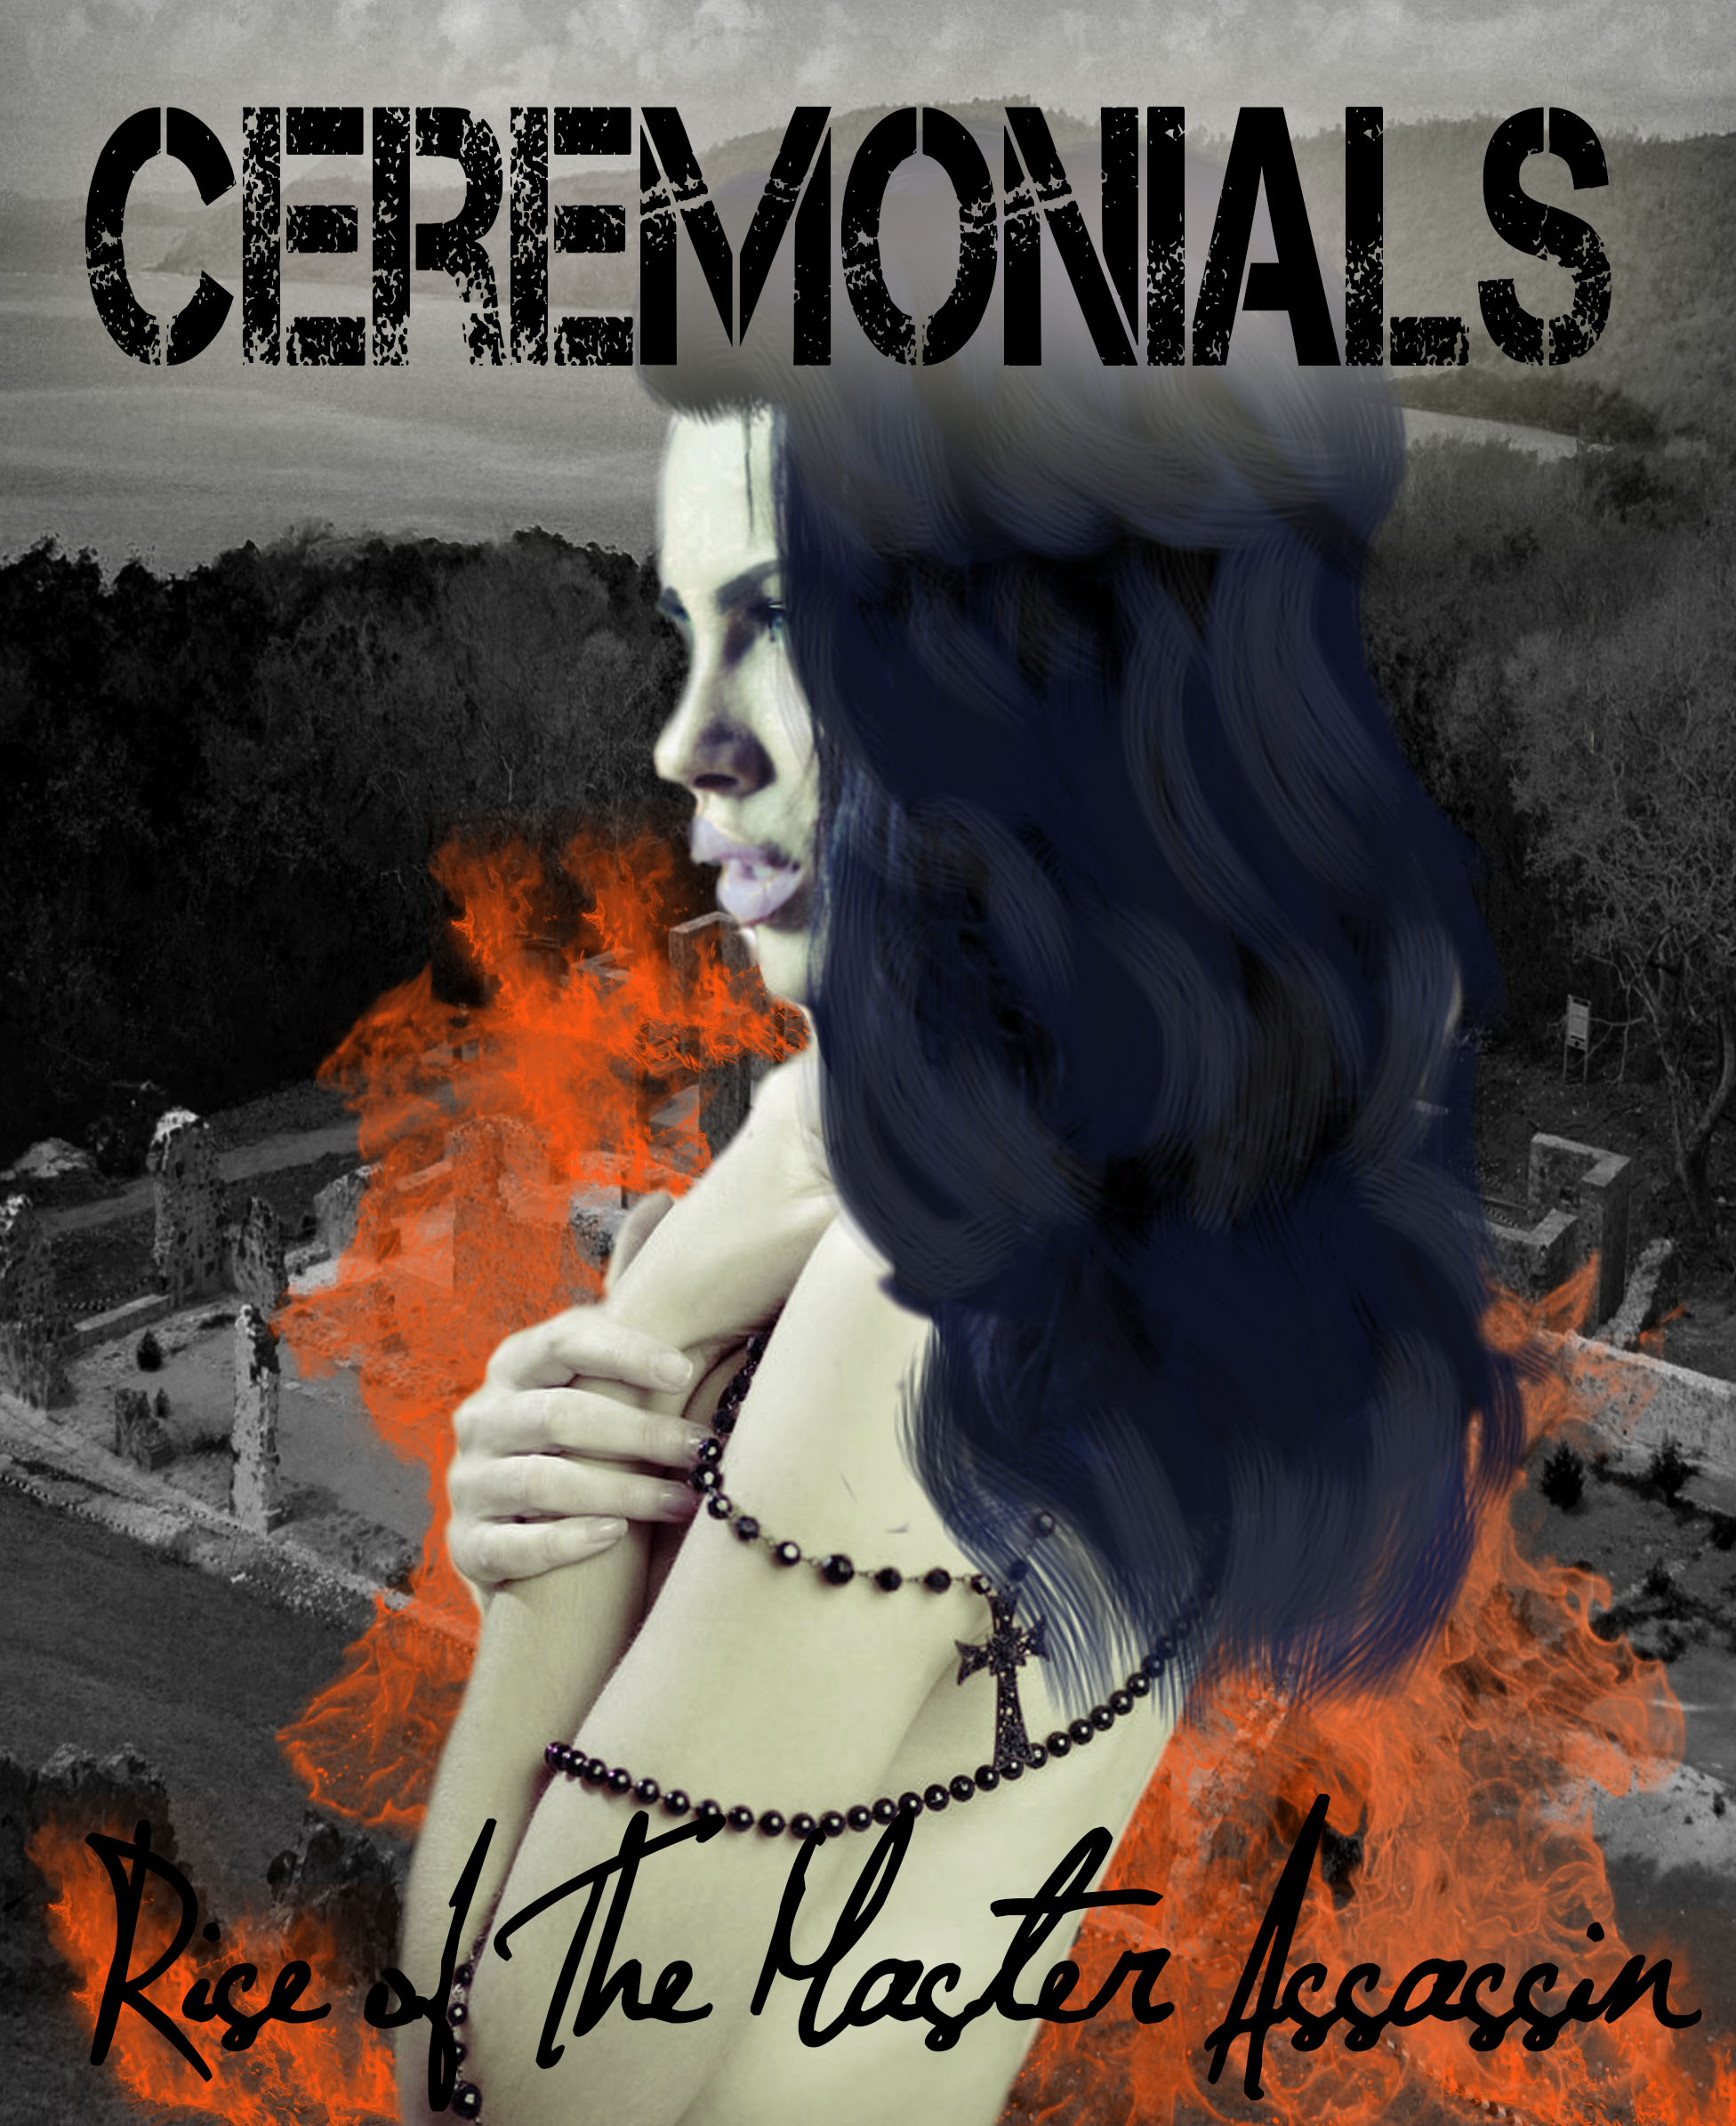 ceremonials book cover first draft